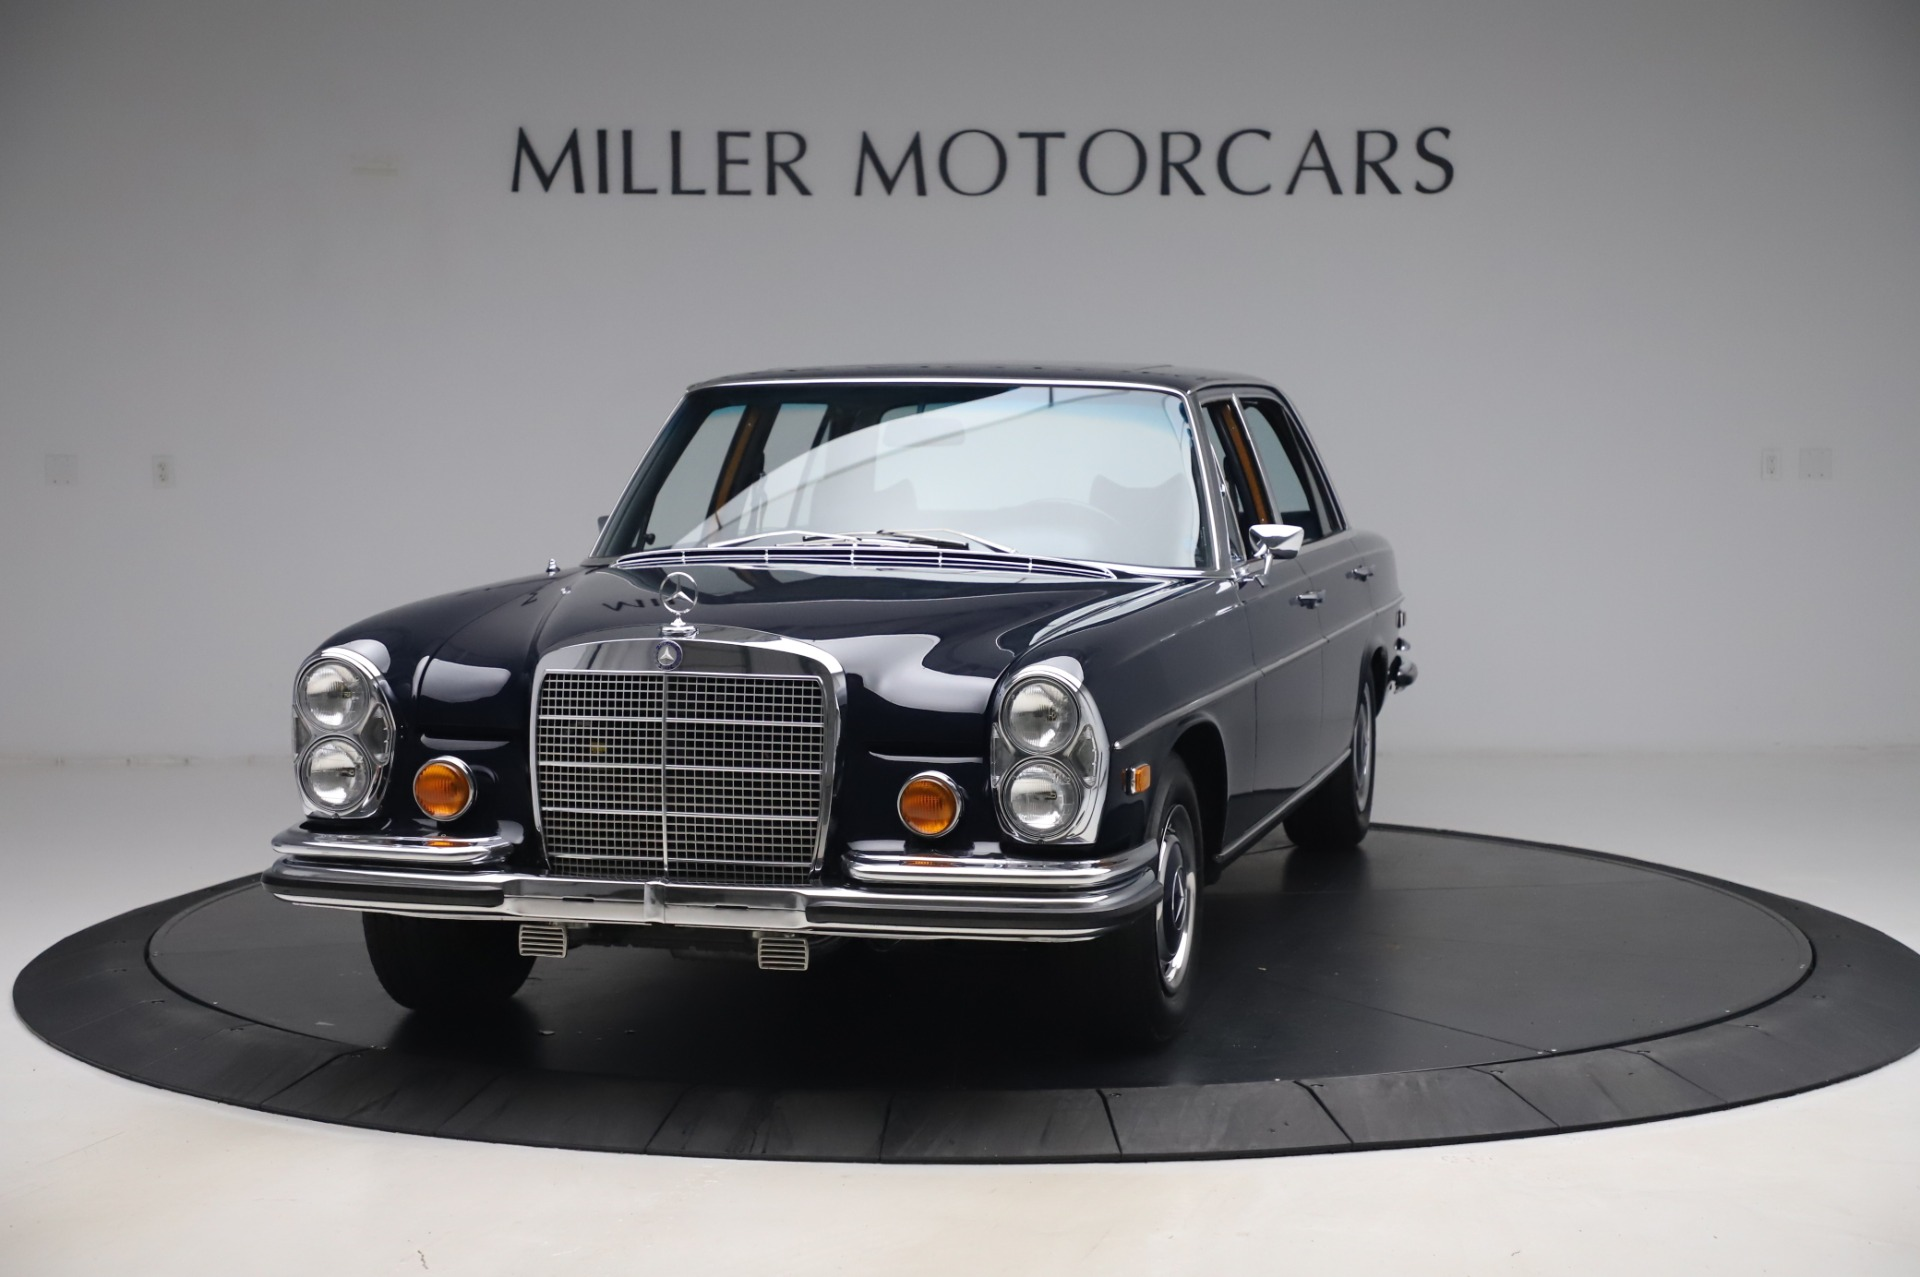 Used 1971 Mercedes-Benz 300 SEL 6.3 for sale $117,000 at McLaren Greenwich in Greenwich CT 06830 1